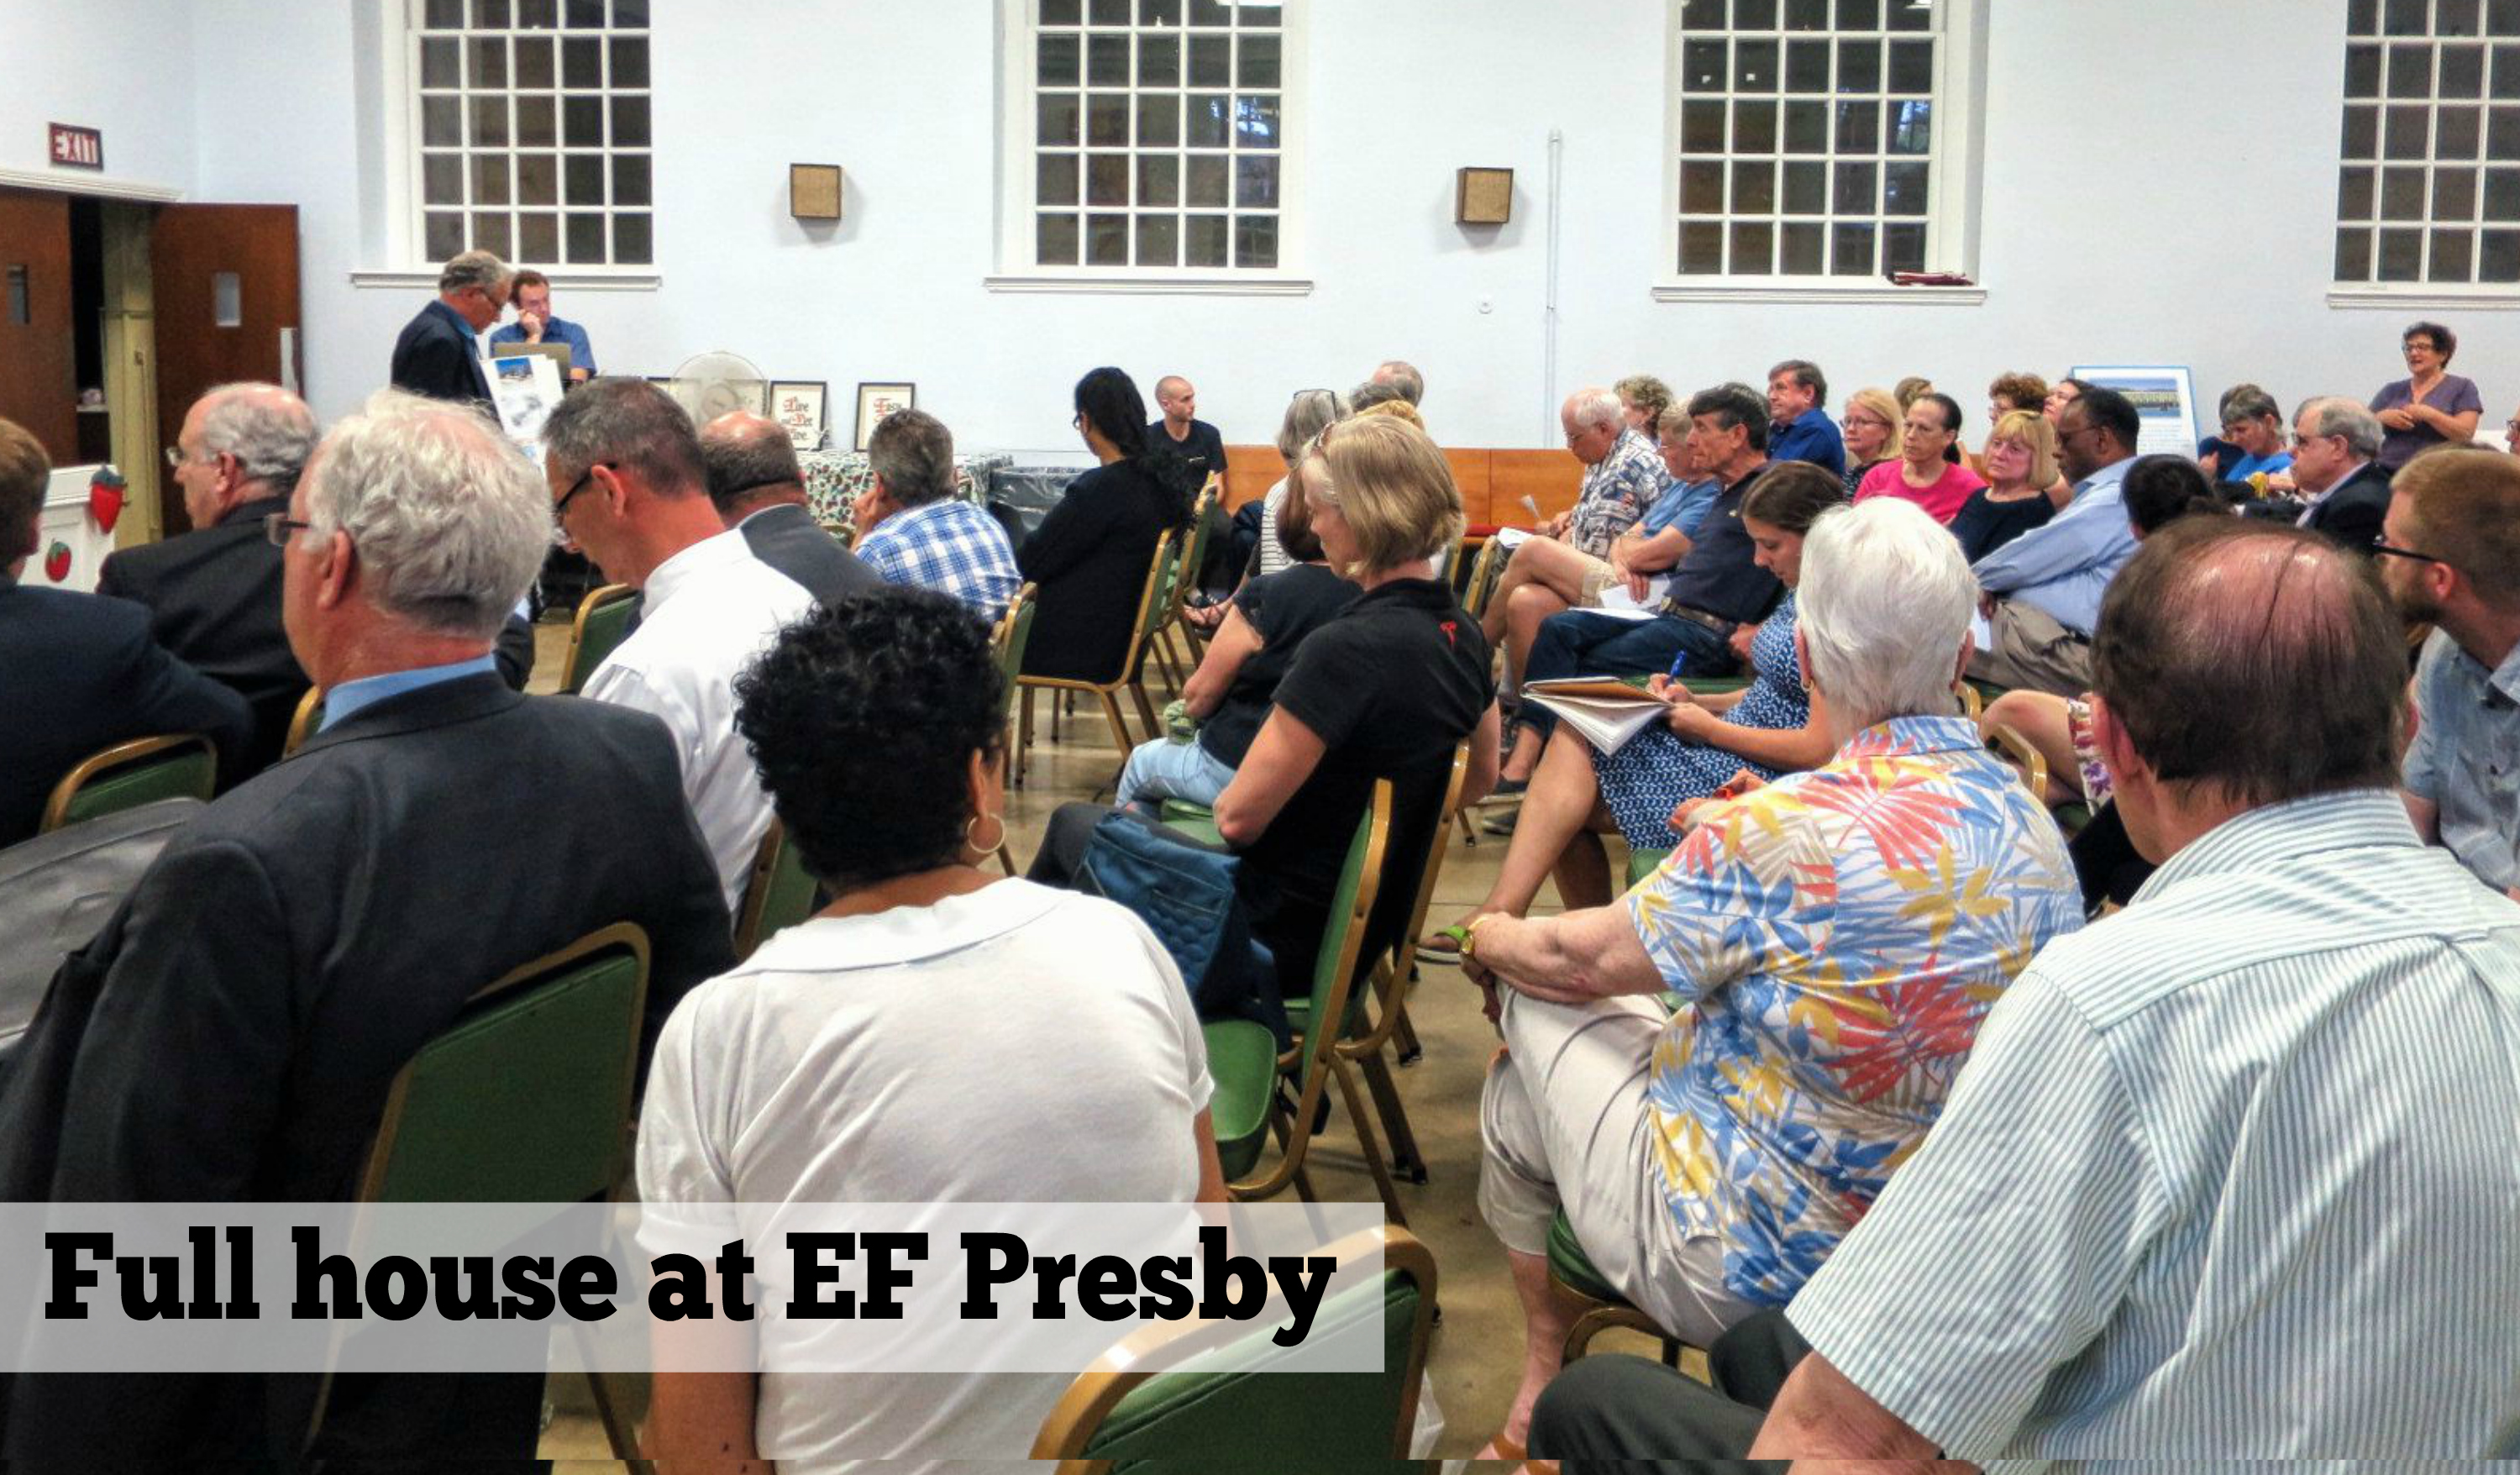 EastFallsLocal Recap with Video Emergency PhilllyU meeting 6-6-16 Full House at EF Presby